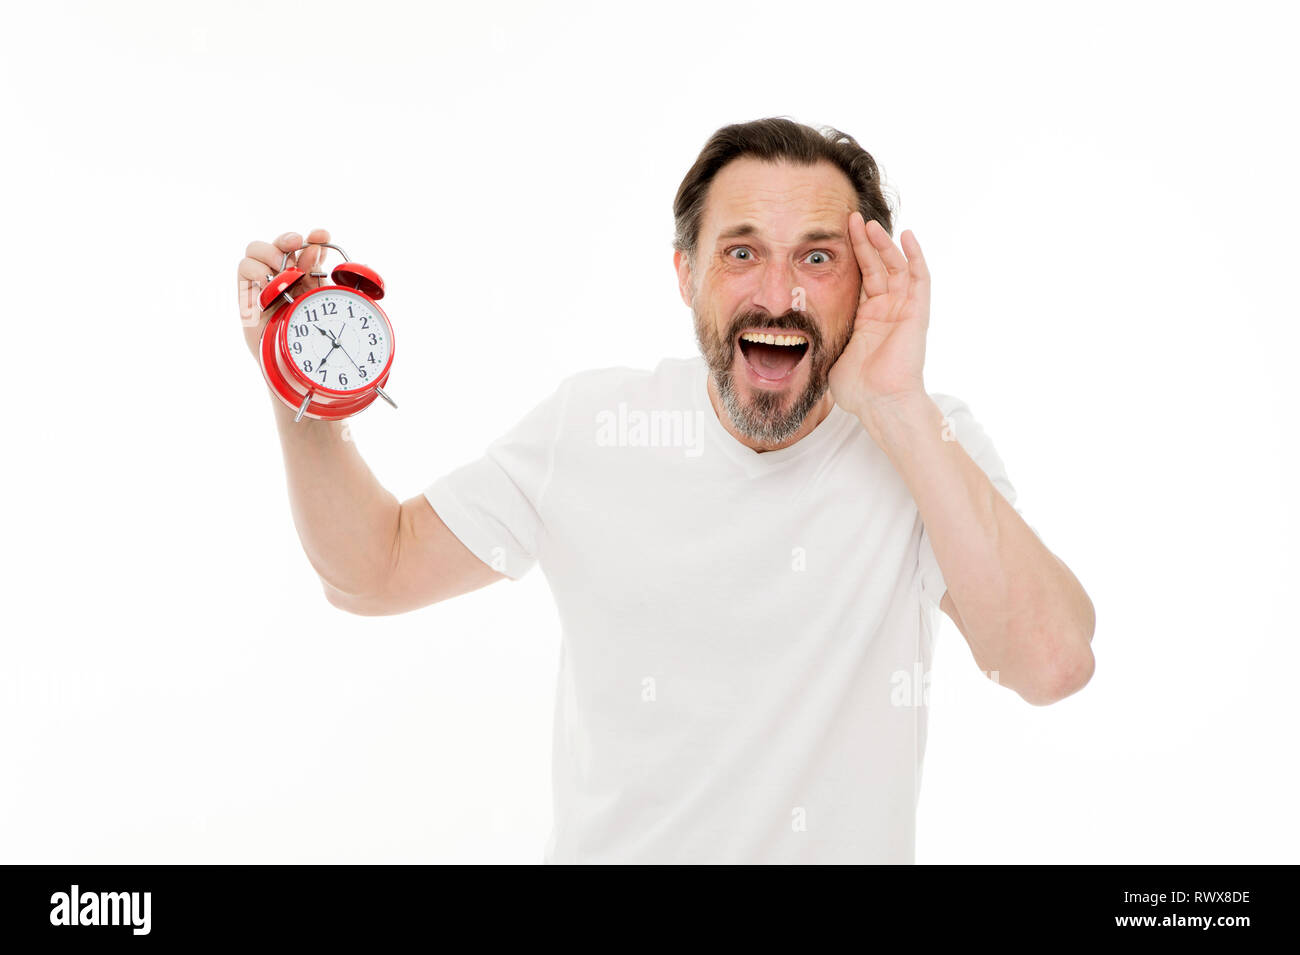 Stressful times. Man bearded mature guy hold clock isolated on white. Man with beard check what time is it. Time management skills. Personal schedule and daily regime. Alarm clock morning time. - Stock Image